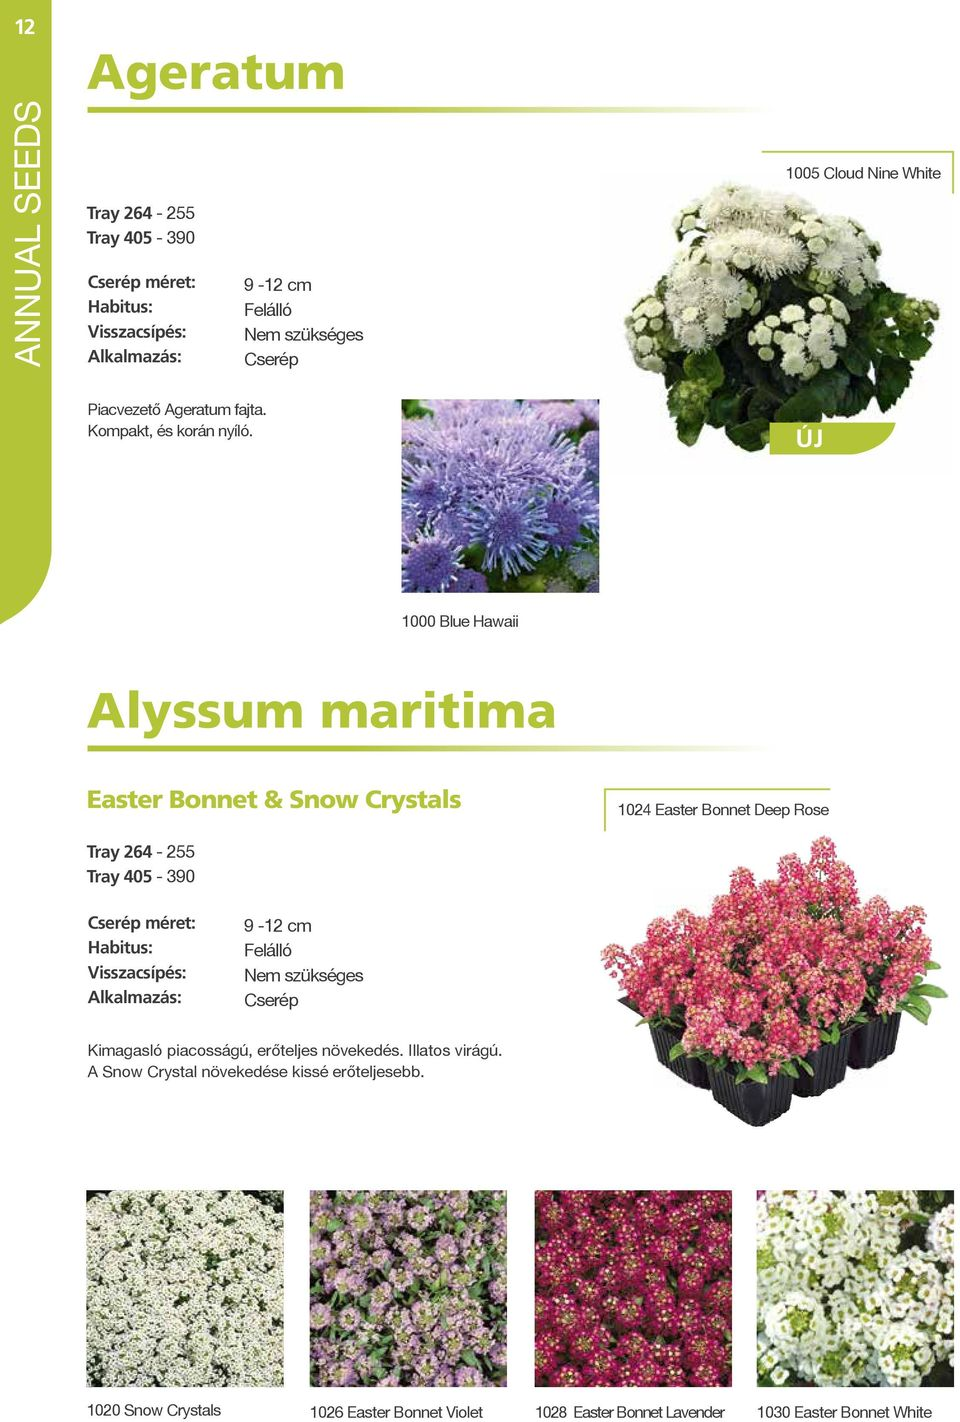 ÚJ 1000 Blue Hawaii Alyssum maritima Easter Bonnet & Snow Crystals 1024 Easter Bonnet Deep Rose Tray 264-255 Tray